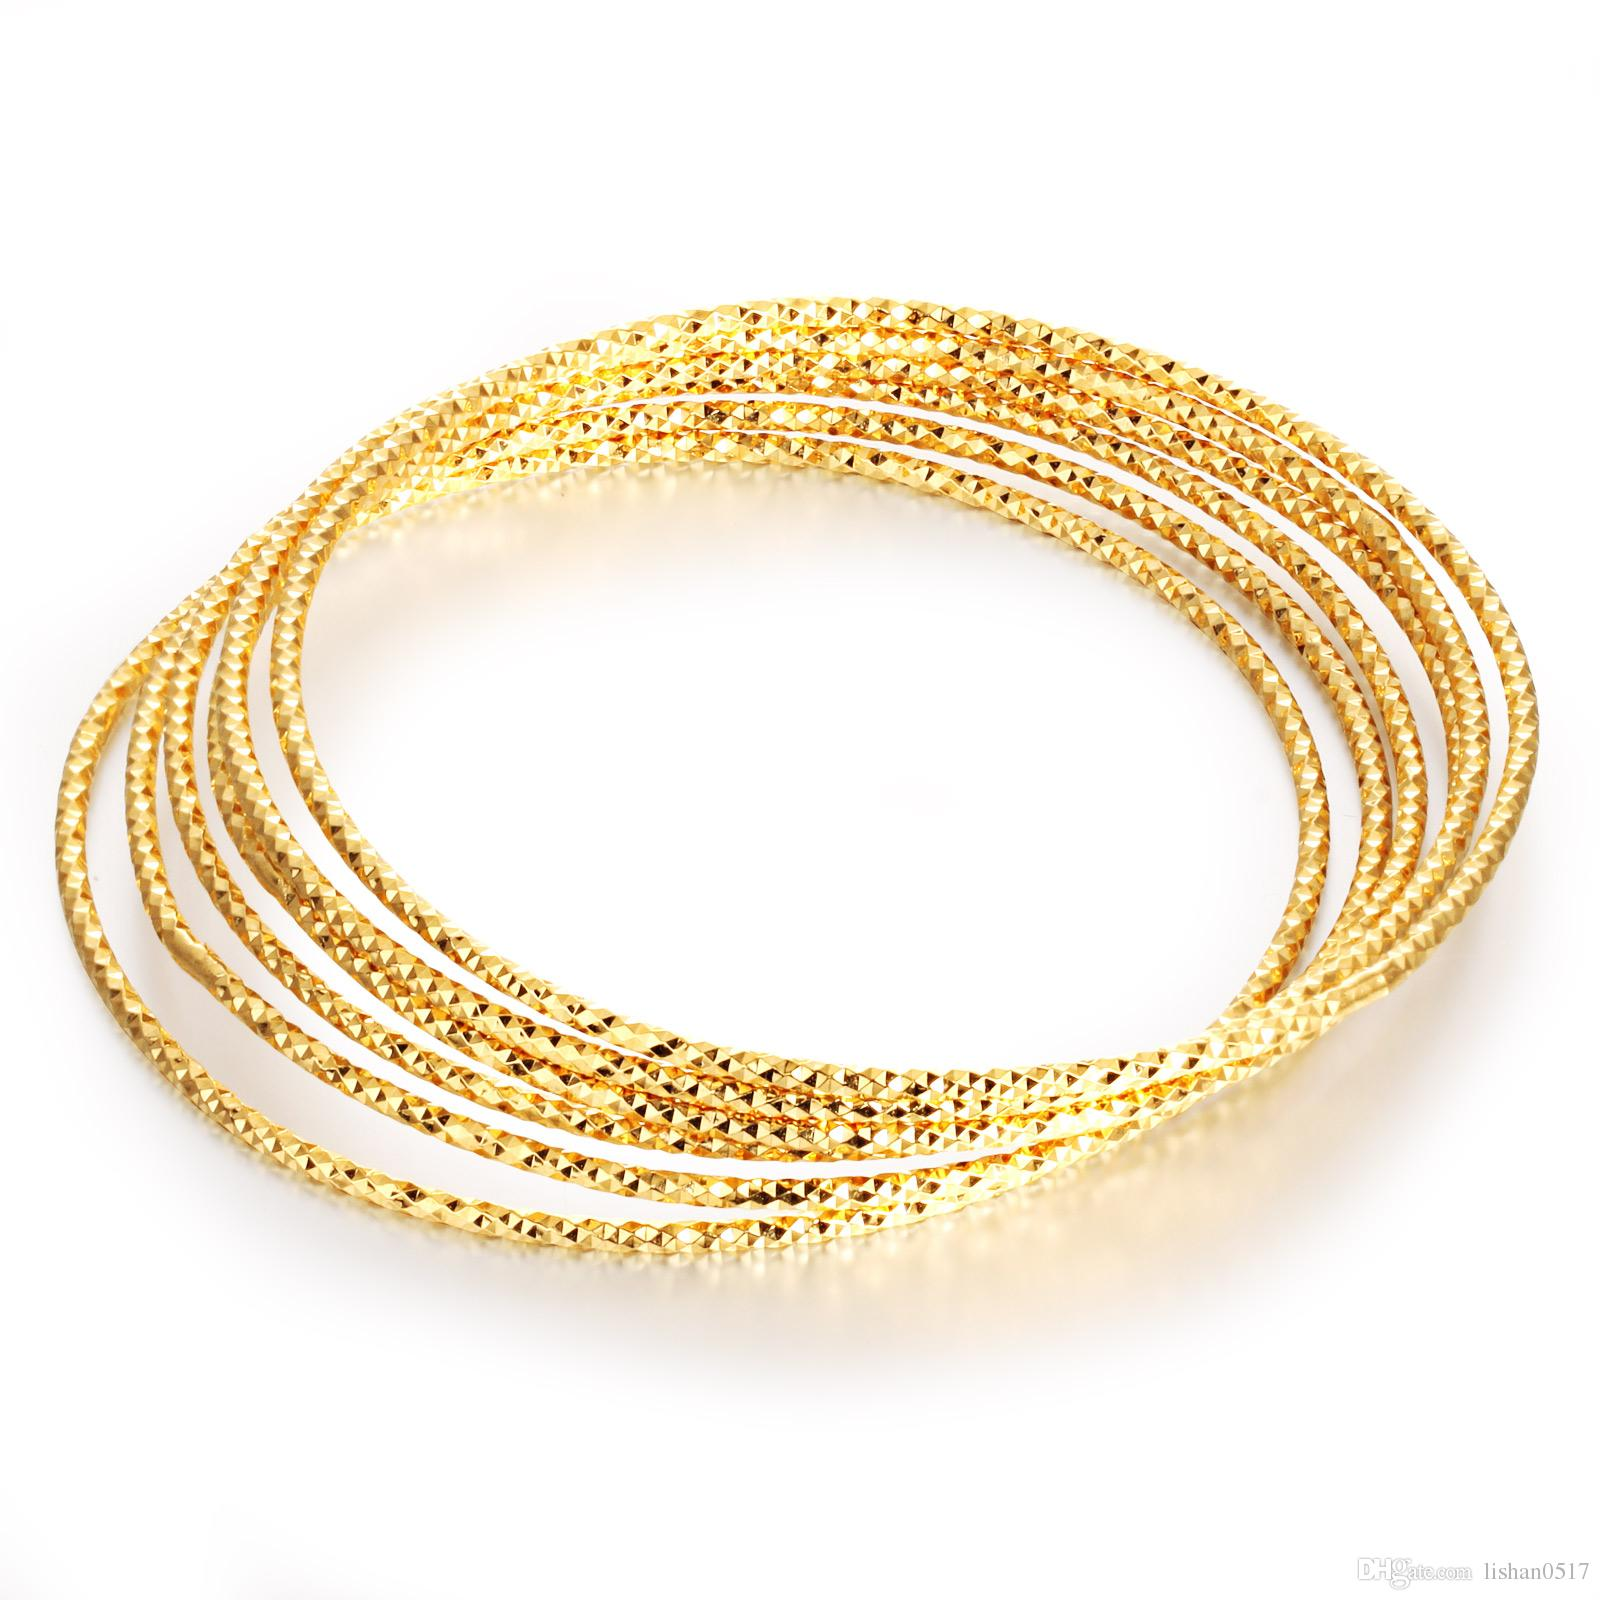 bangles shop bangle jewellery c bracelet bracelets qvc gold type uk singapore n